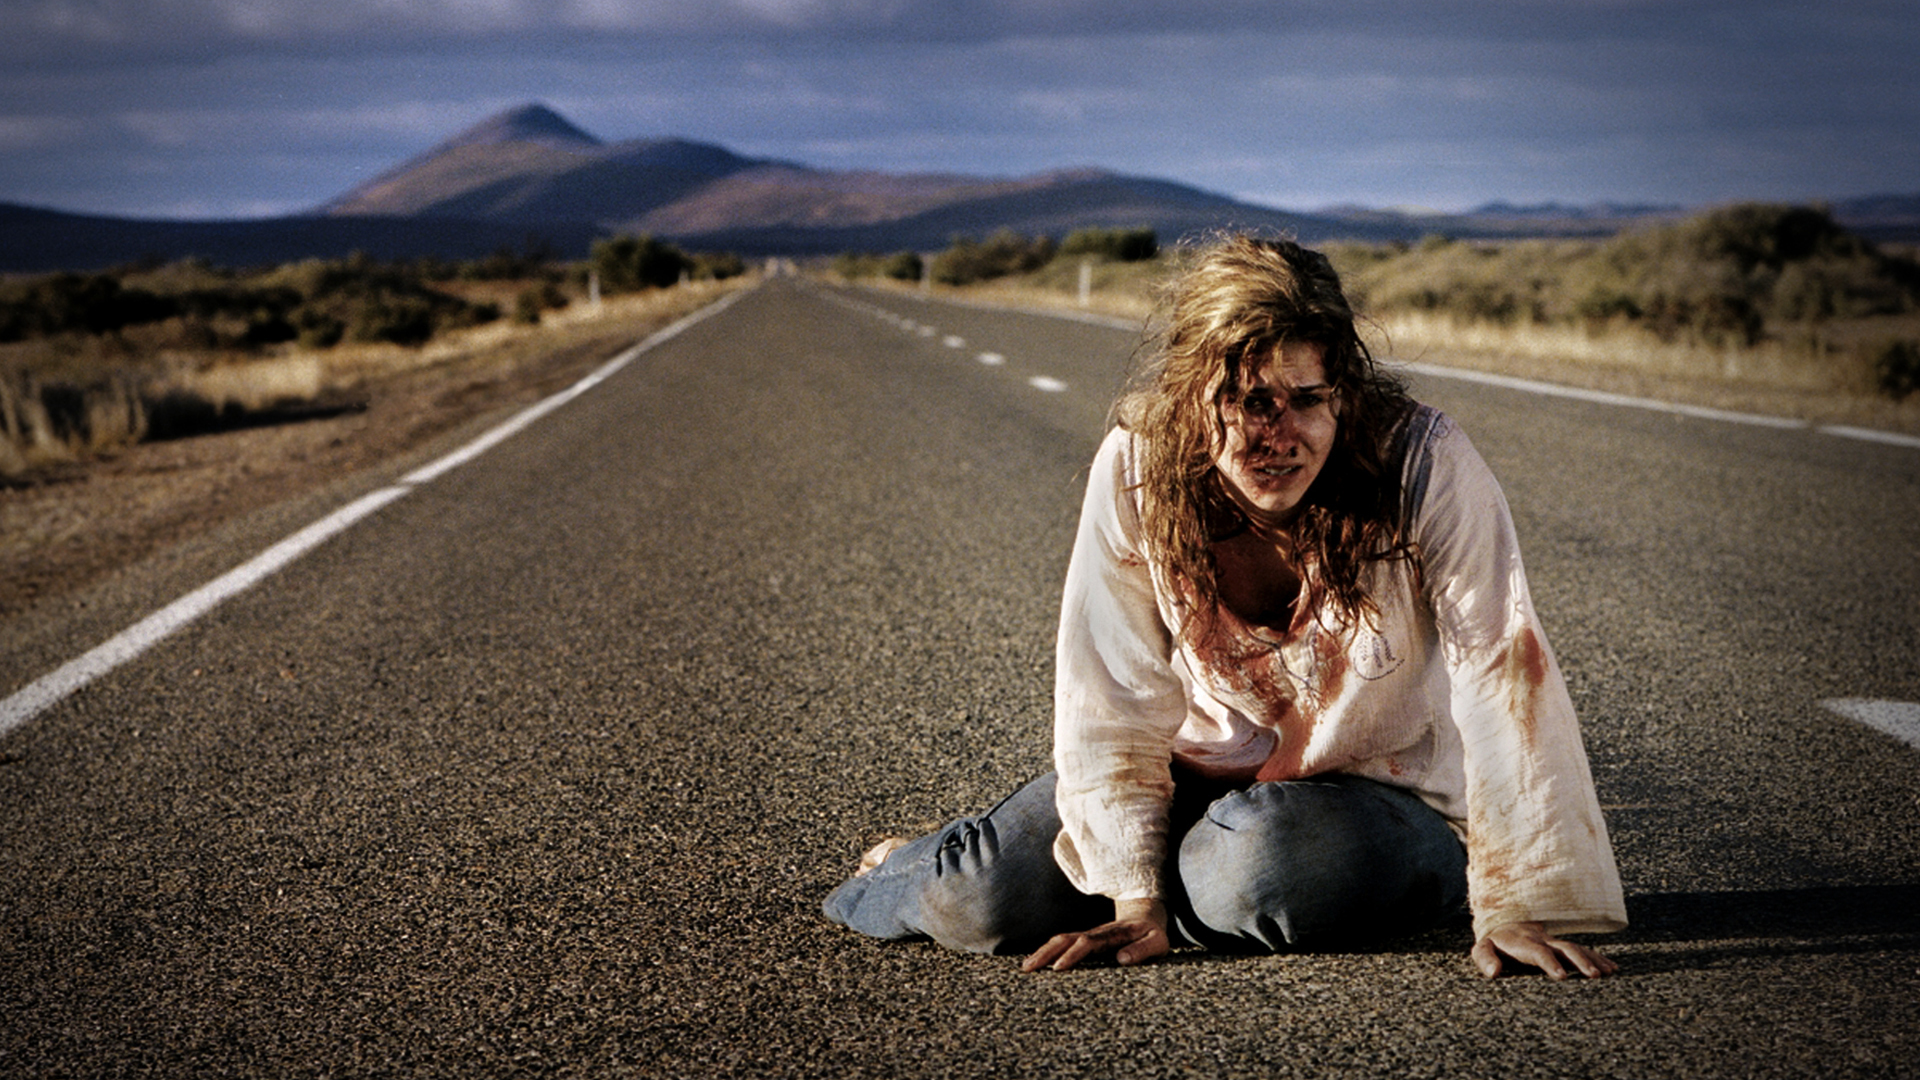 15 Australian Horror Films That Will Make You Think Twice